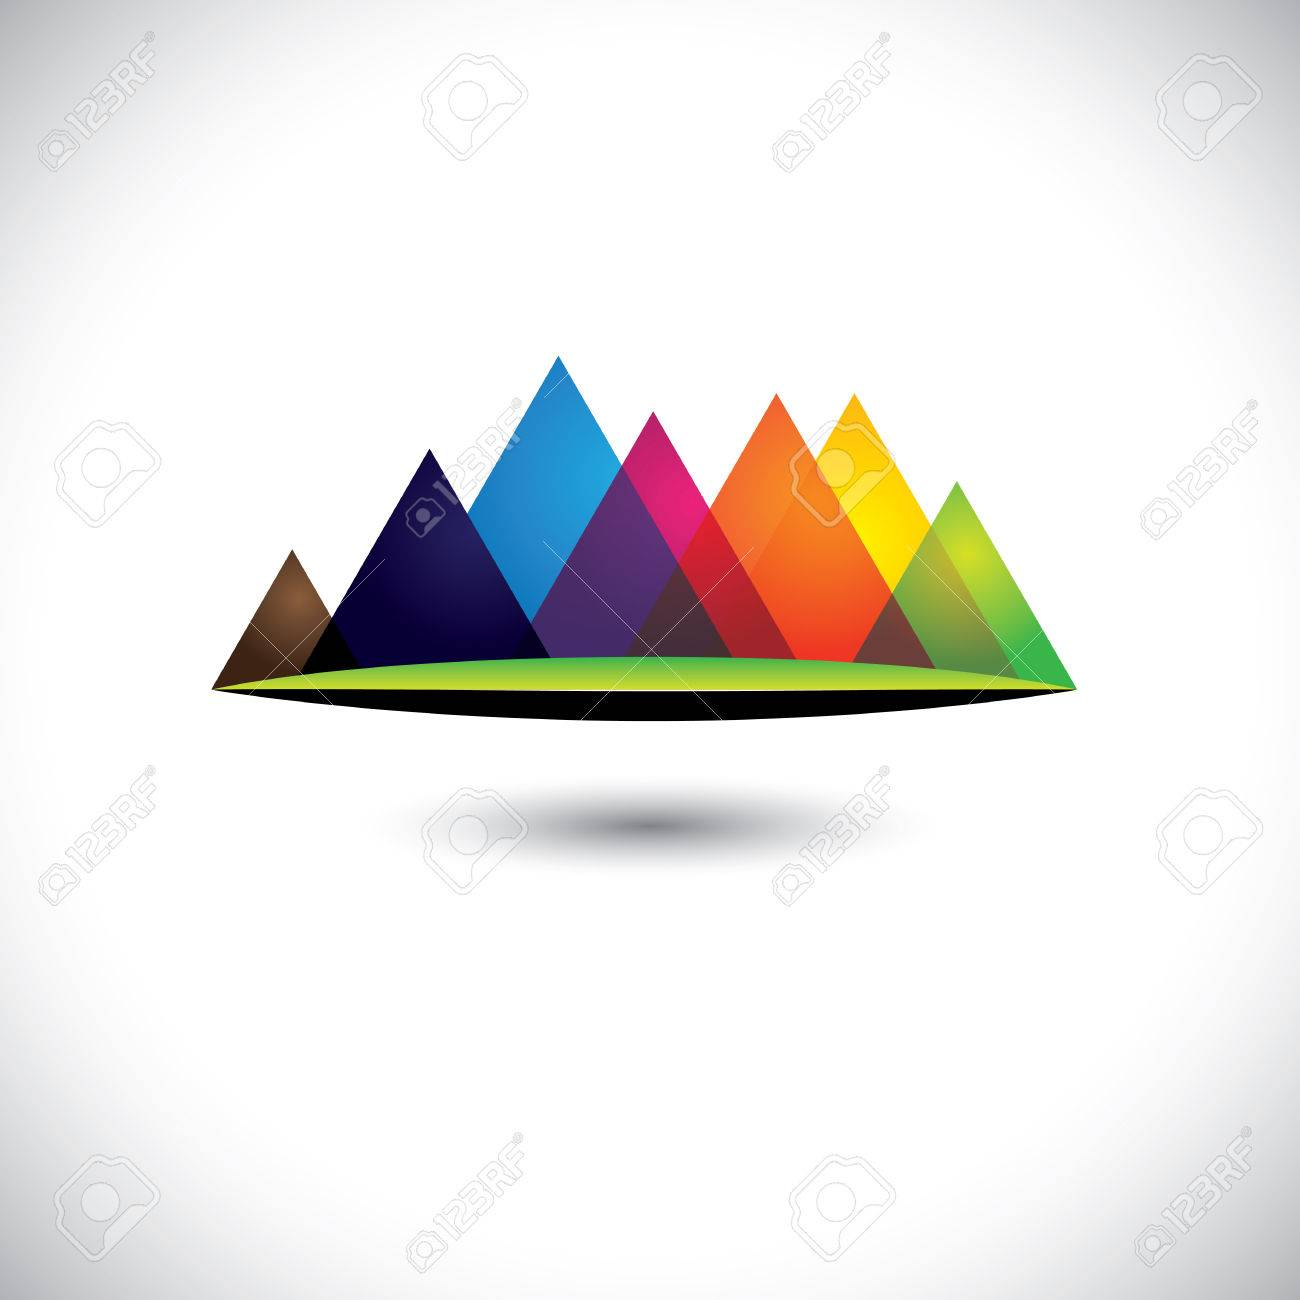 abstract colorful hills & mountain ranges & grassland icon. Stock Vector - 23866483